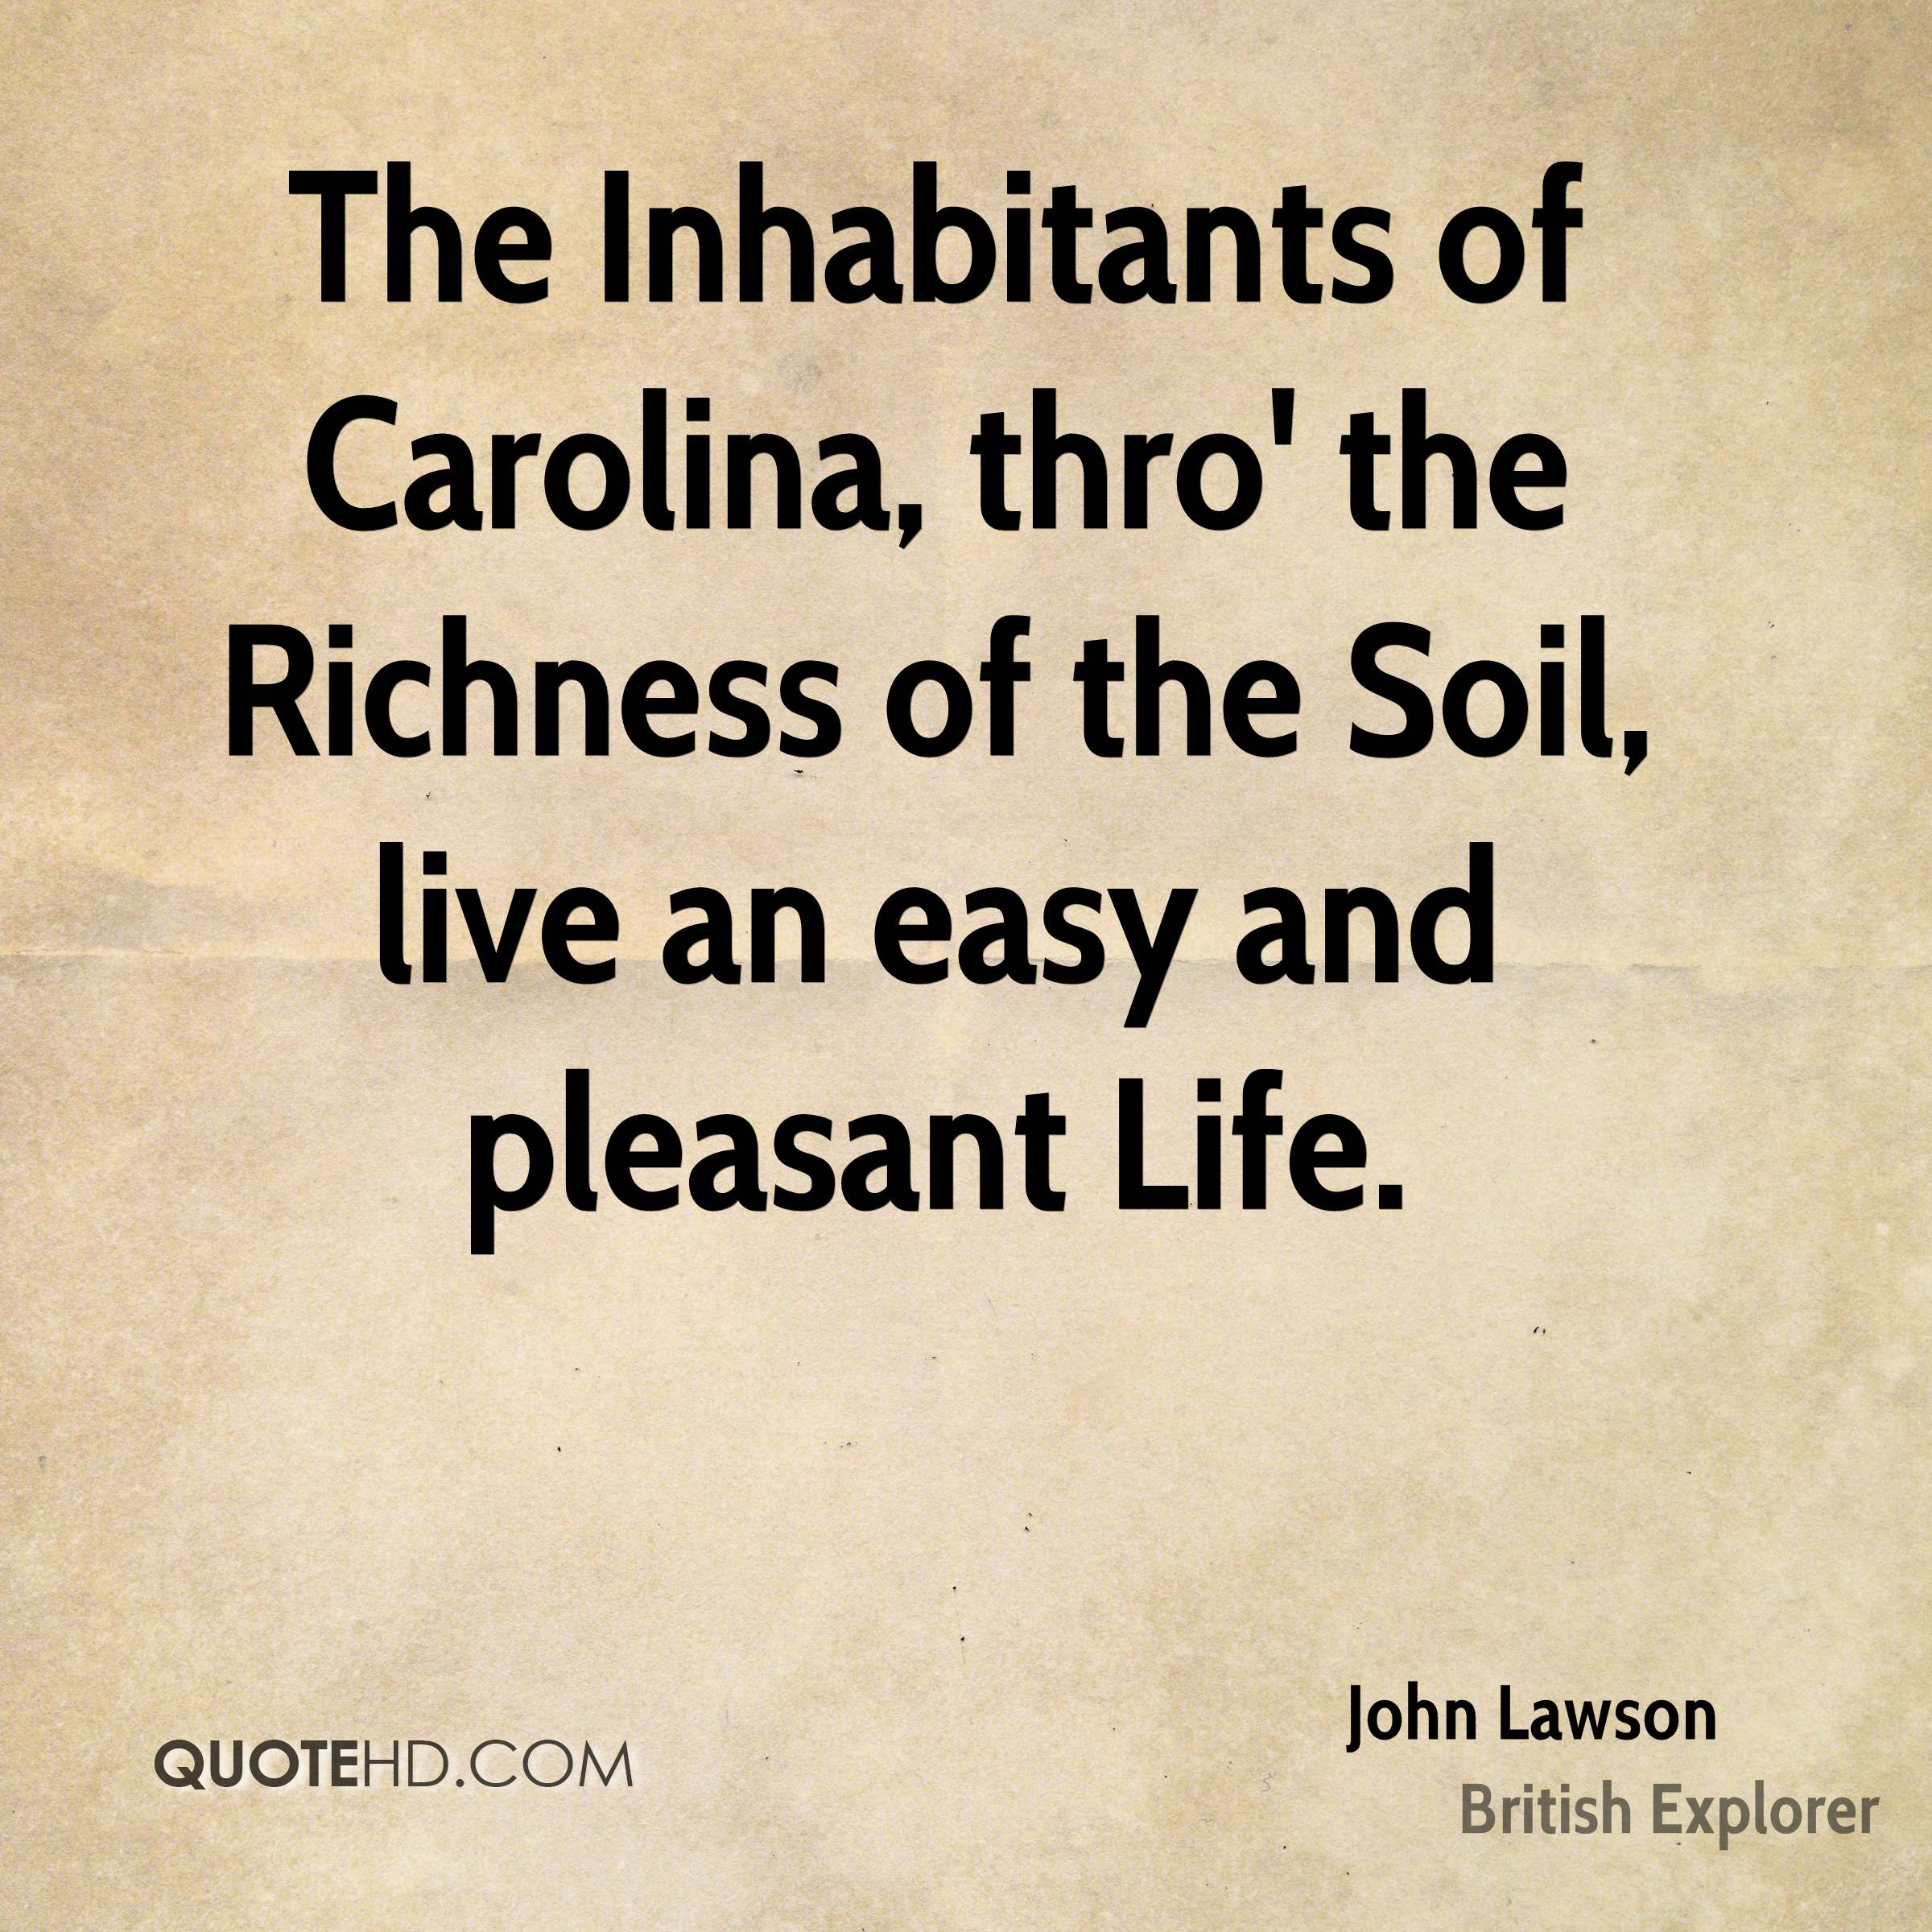 The Inhabitants of Carolina, thro' the Richness of the Soil, live an easy and pleasant Life.